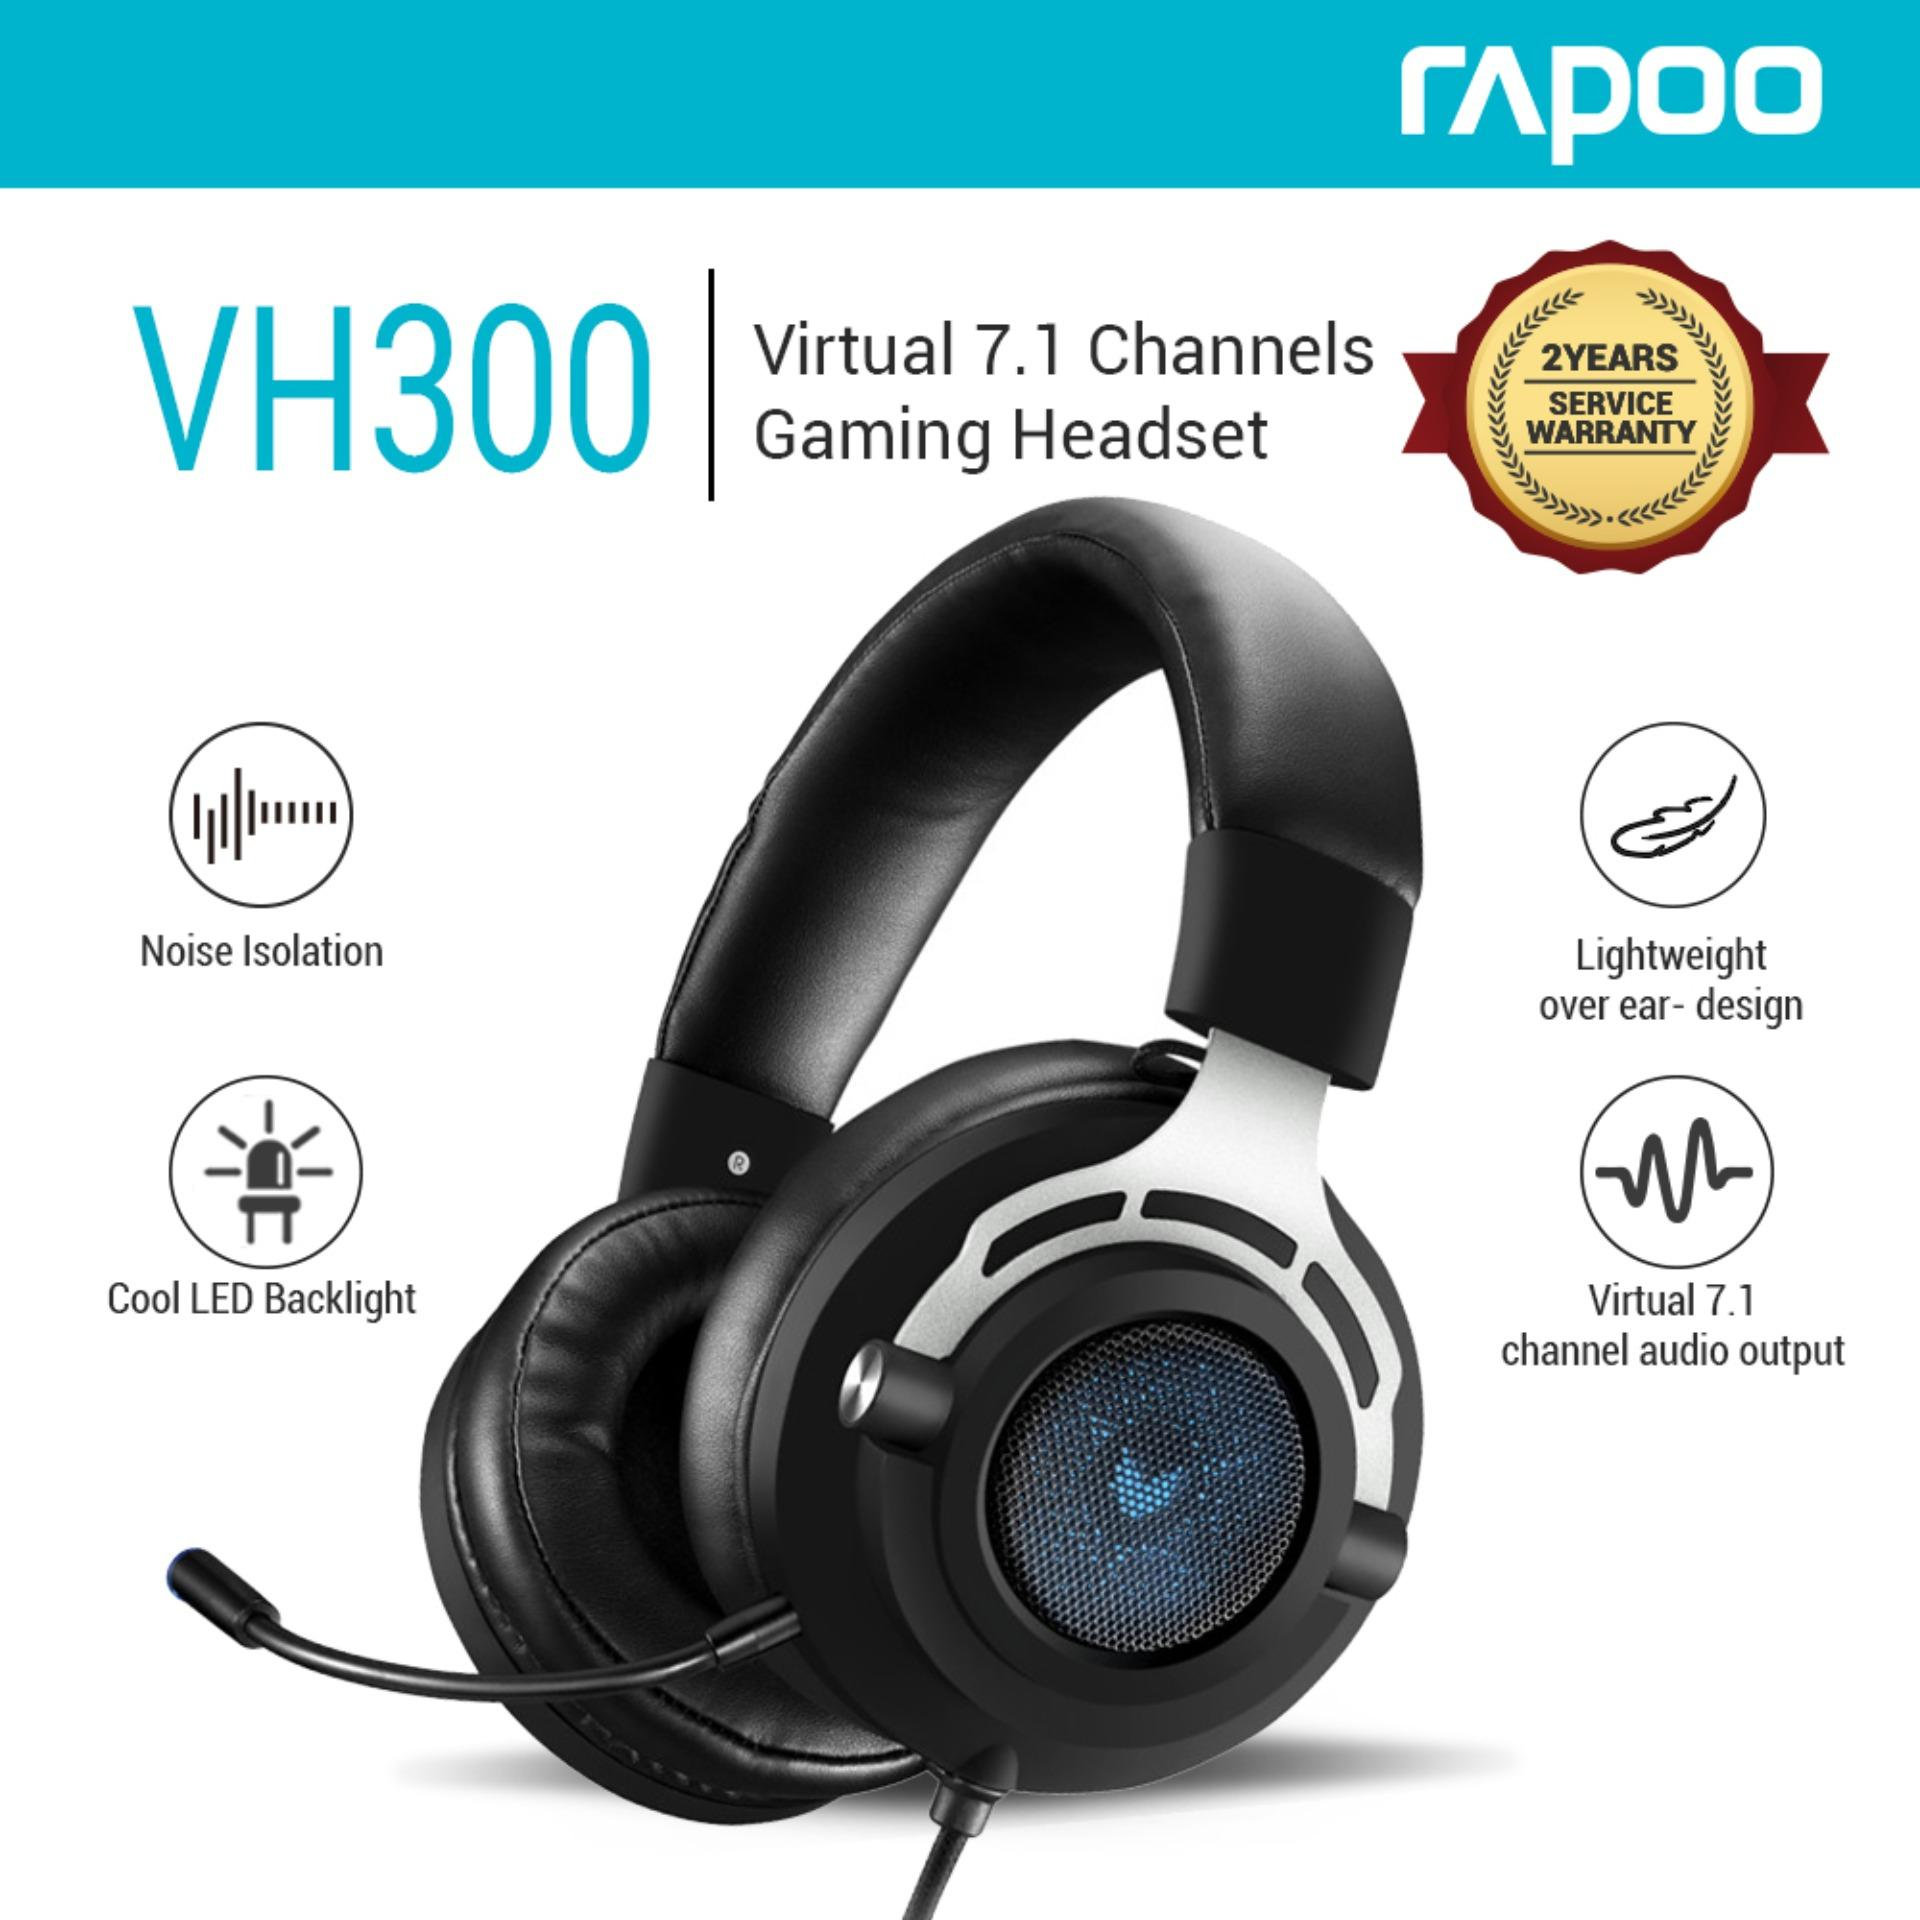 0b75a4d081d Rapoo VH300 Backlit Virtual 7.1 Gaming Headset Middle Level Wired Headphones